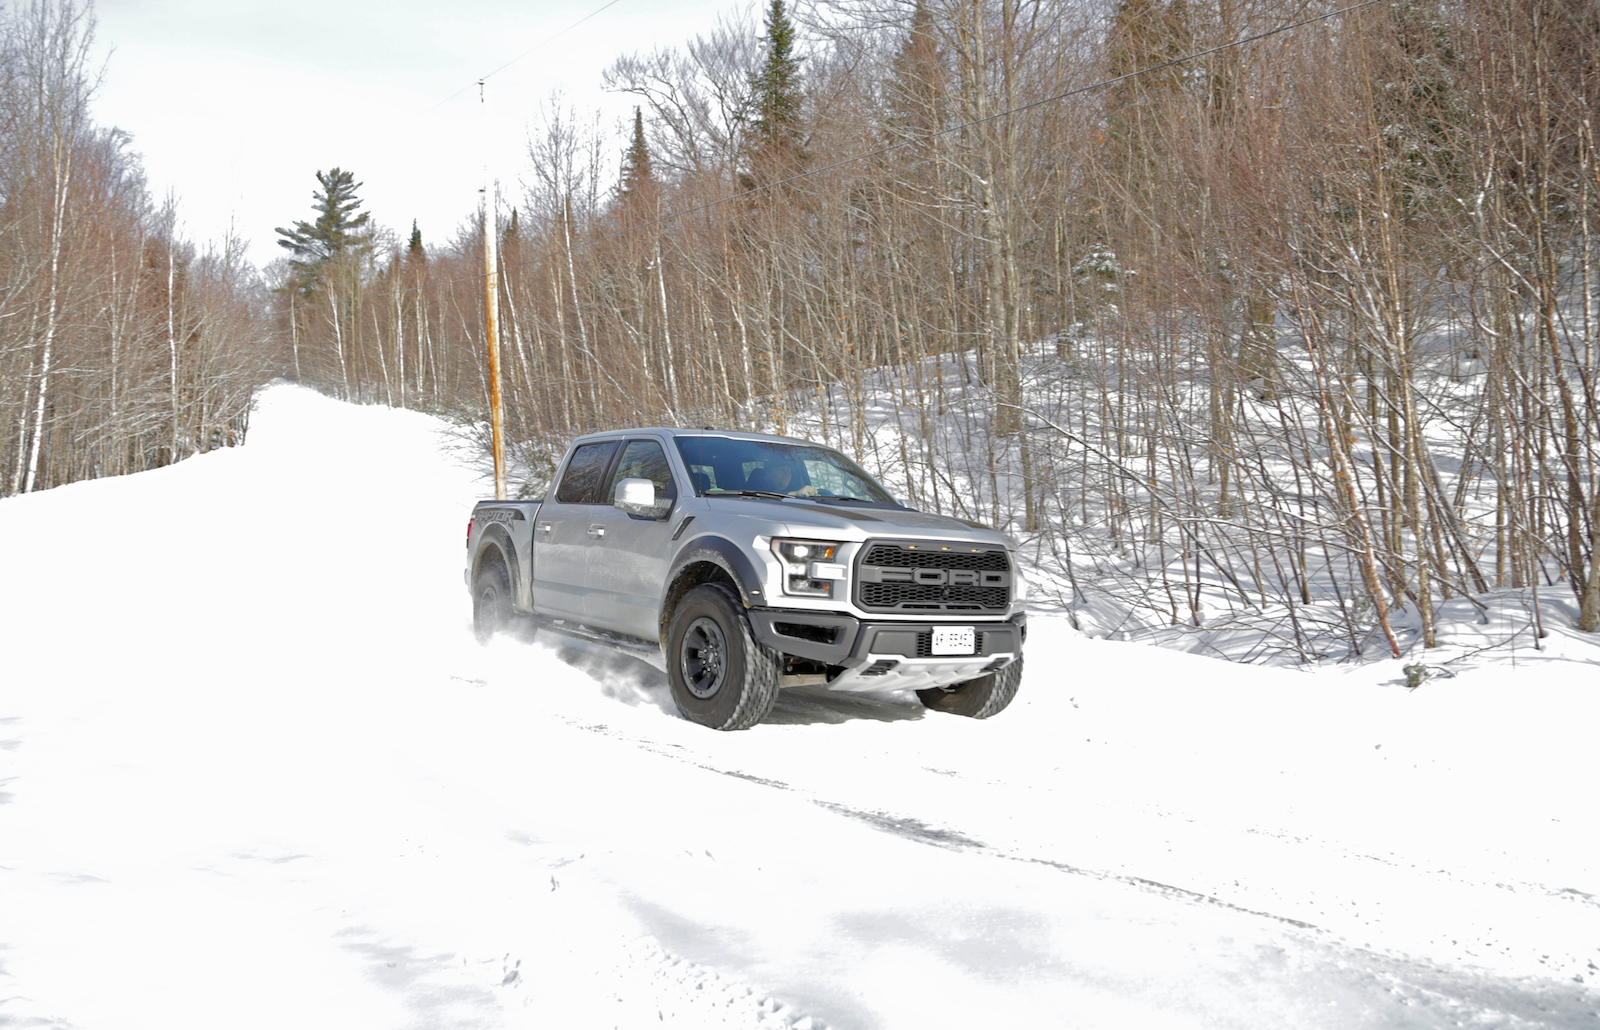 Off Road Trucks For Sale >> 5 Things I Learned Ripping Through the Snow in a 2017 Ford F-150 Raptor » AutoGuide.com News